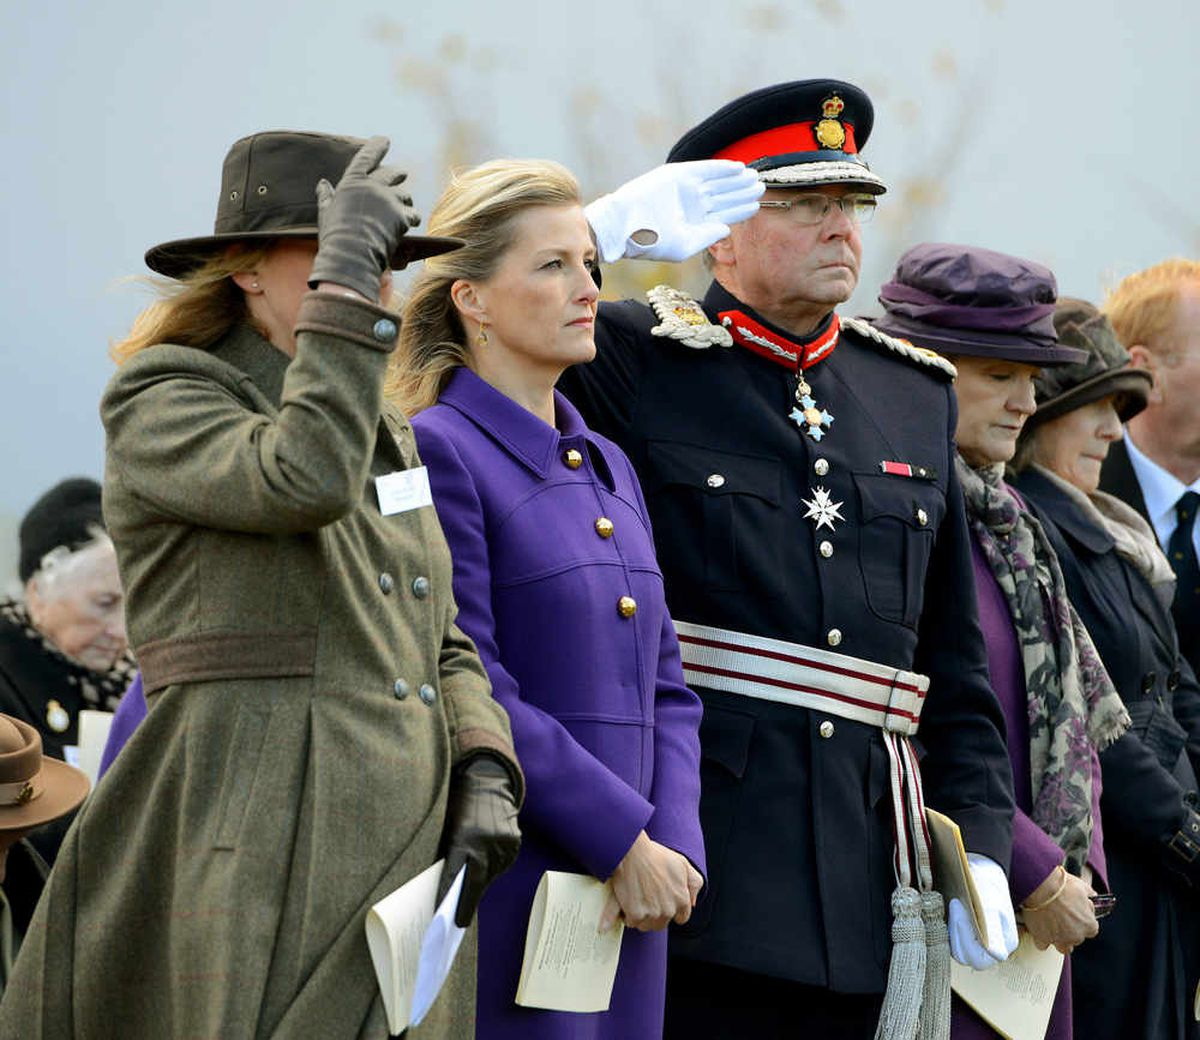 Countess of Wessex pictured during the unveiling of the Womens Land Army statue at National Memorial Arboretum, Alrewas.